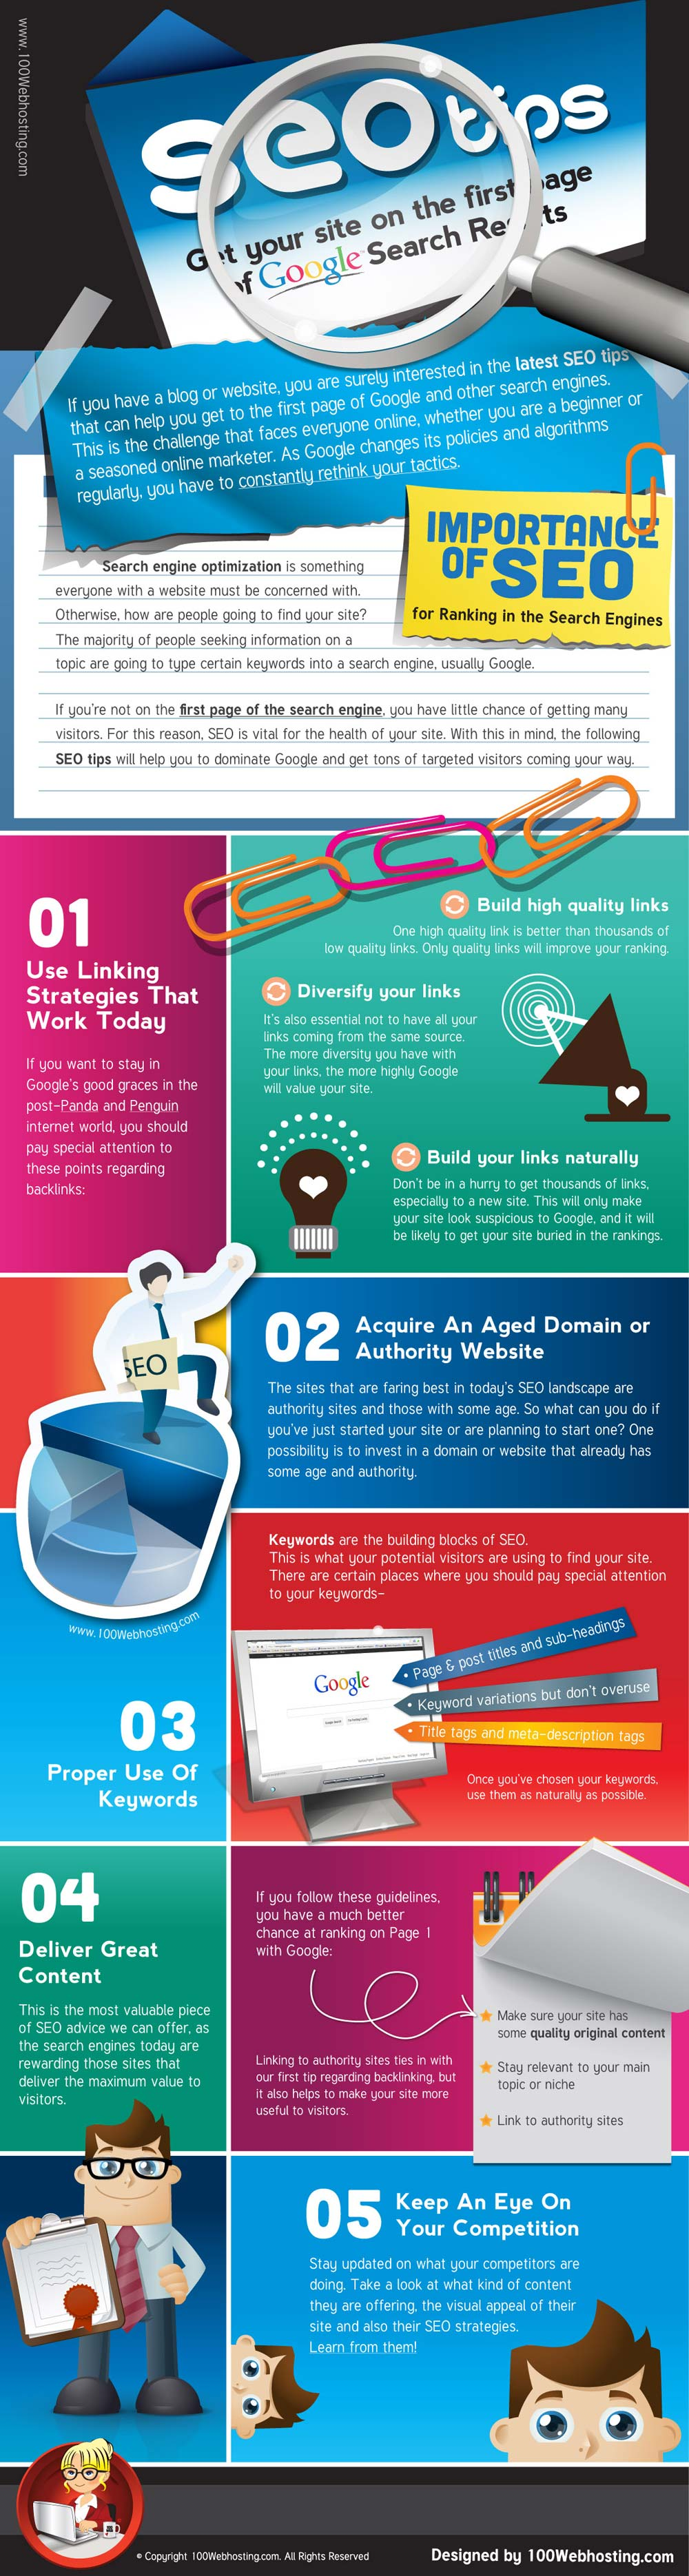 What Is SEO And What Are Good SEO Tips - Infographic